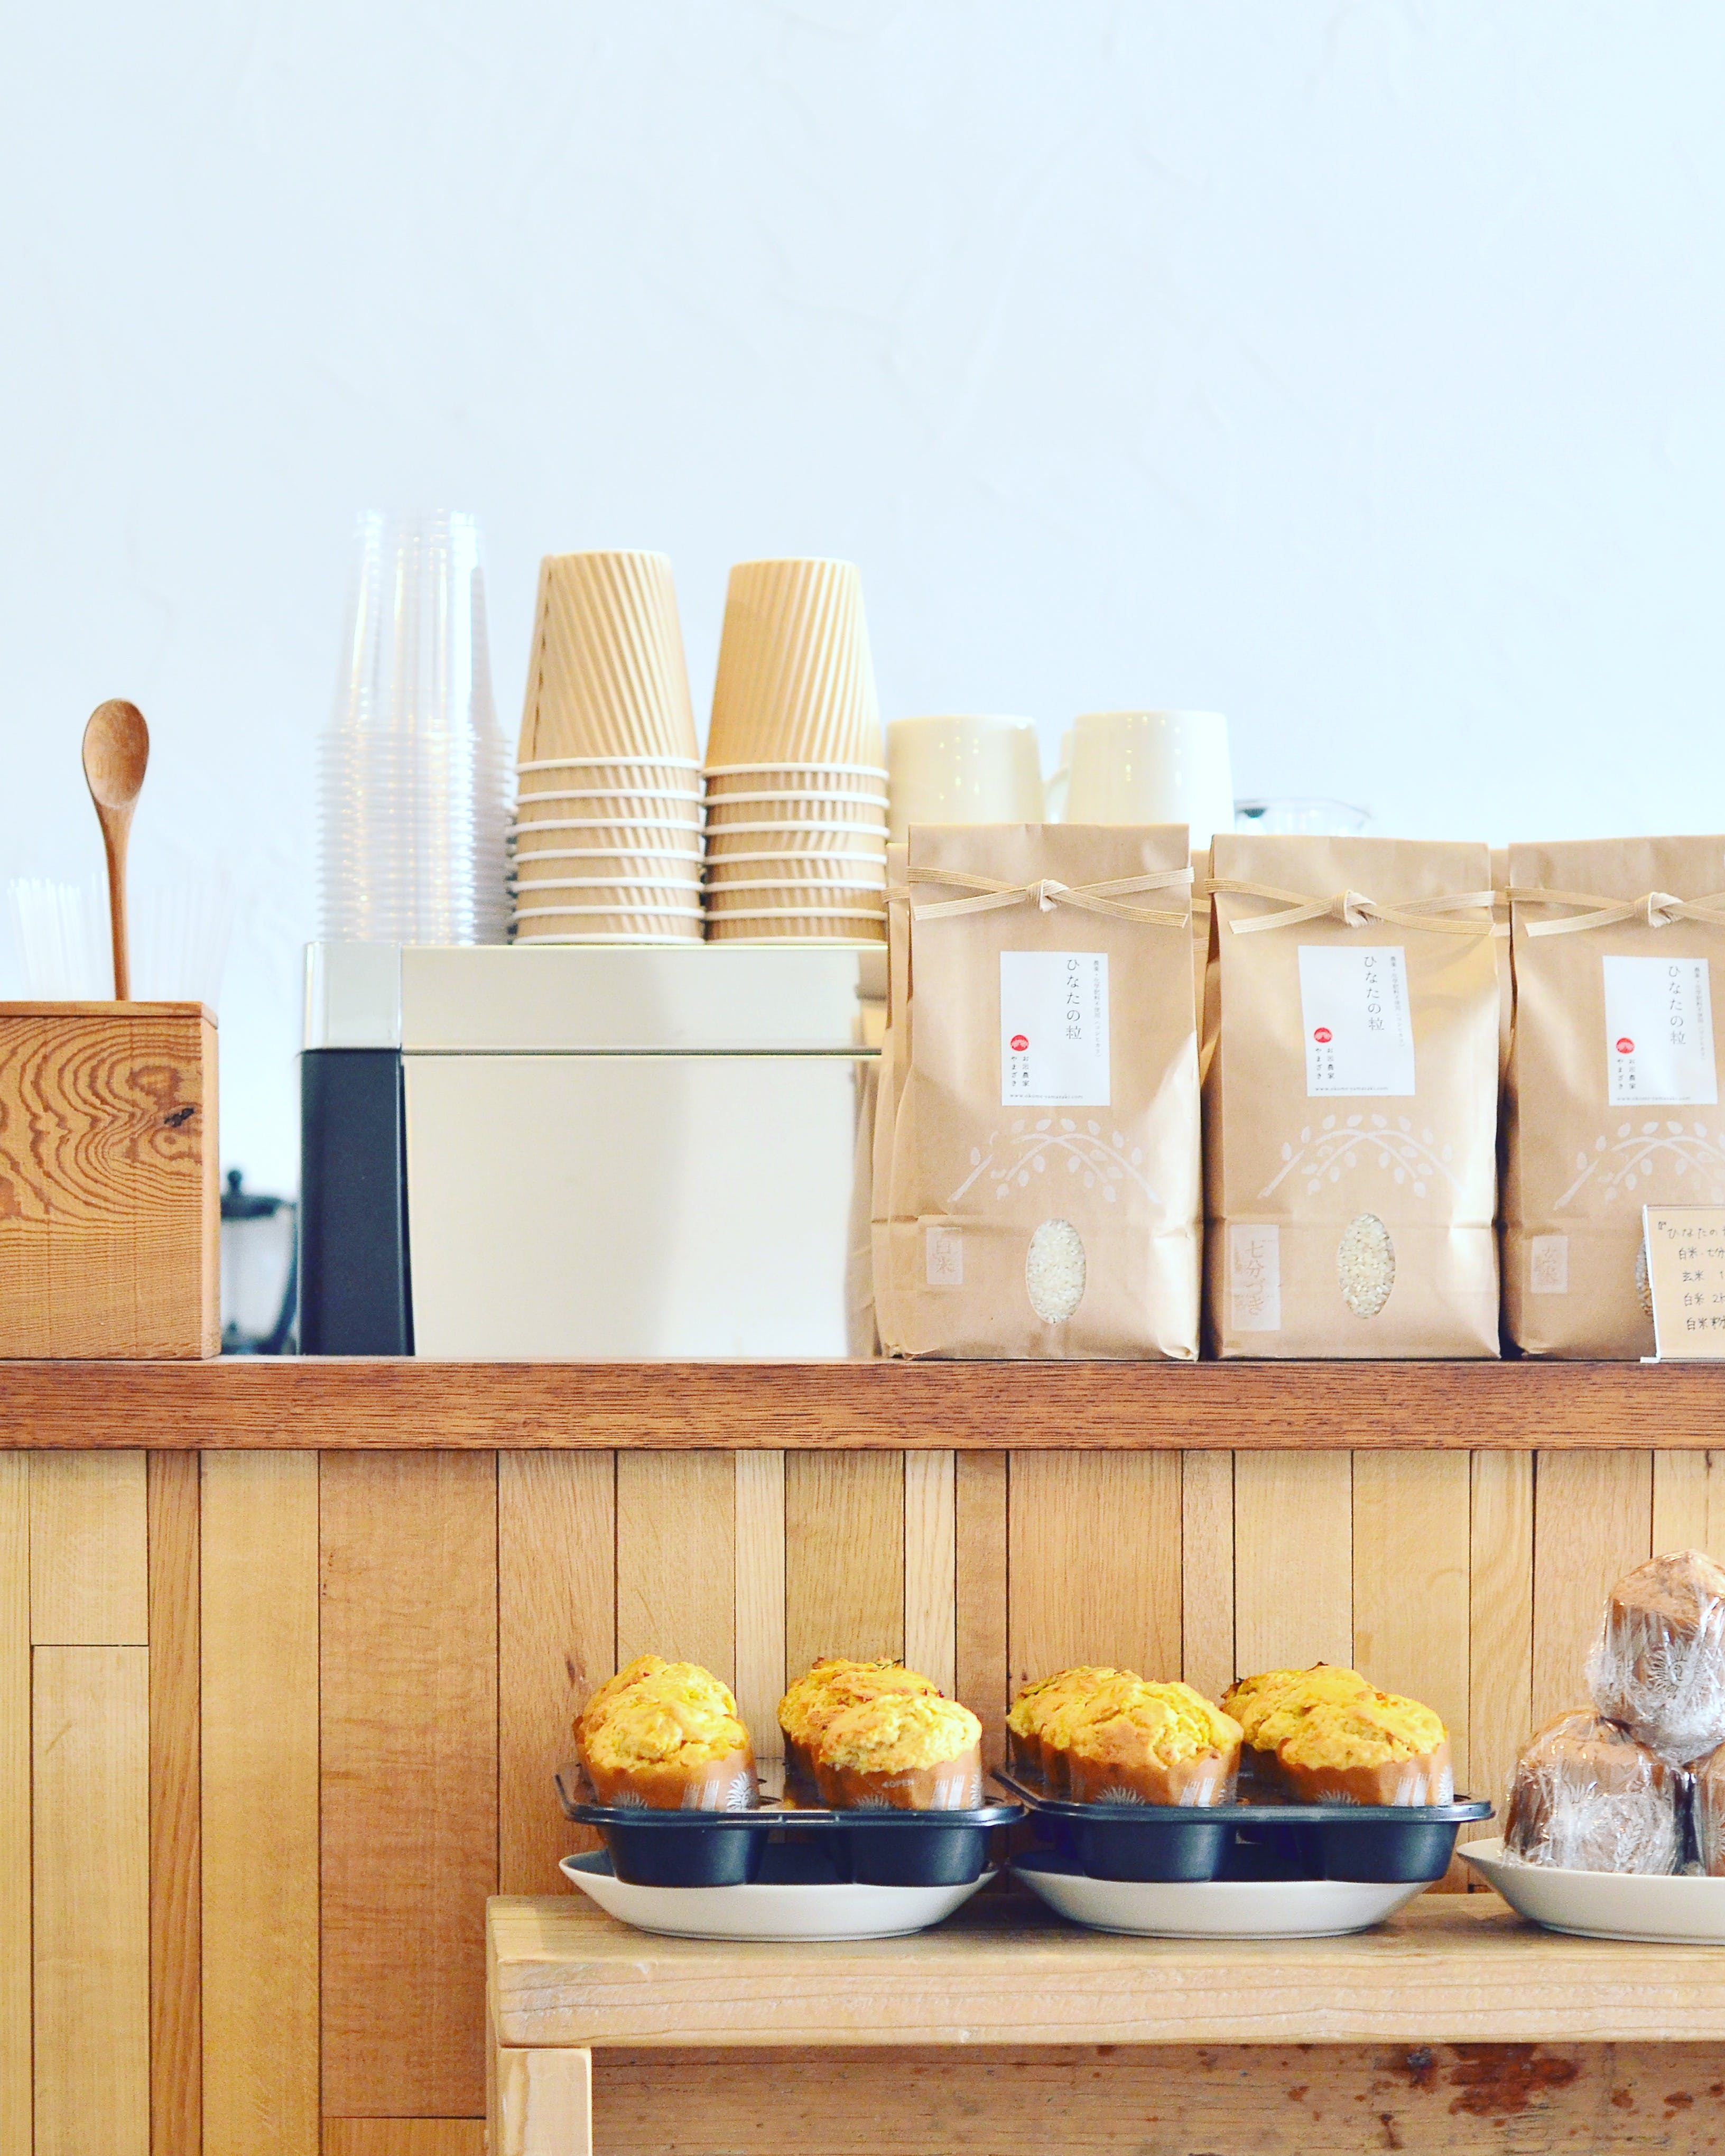 Free stock photo of café, coffee stand, coffer shop